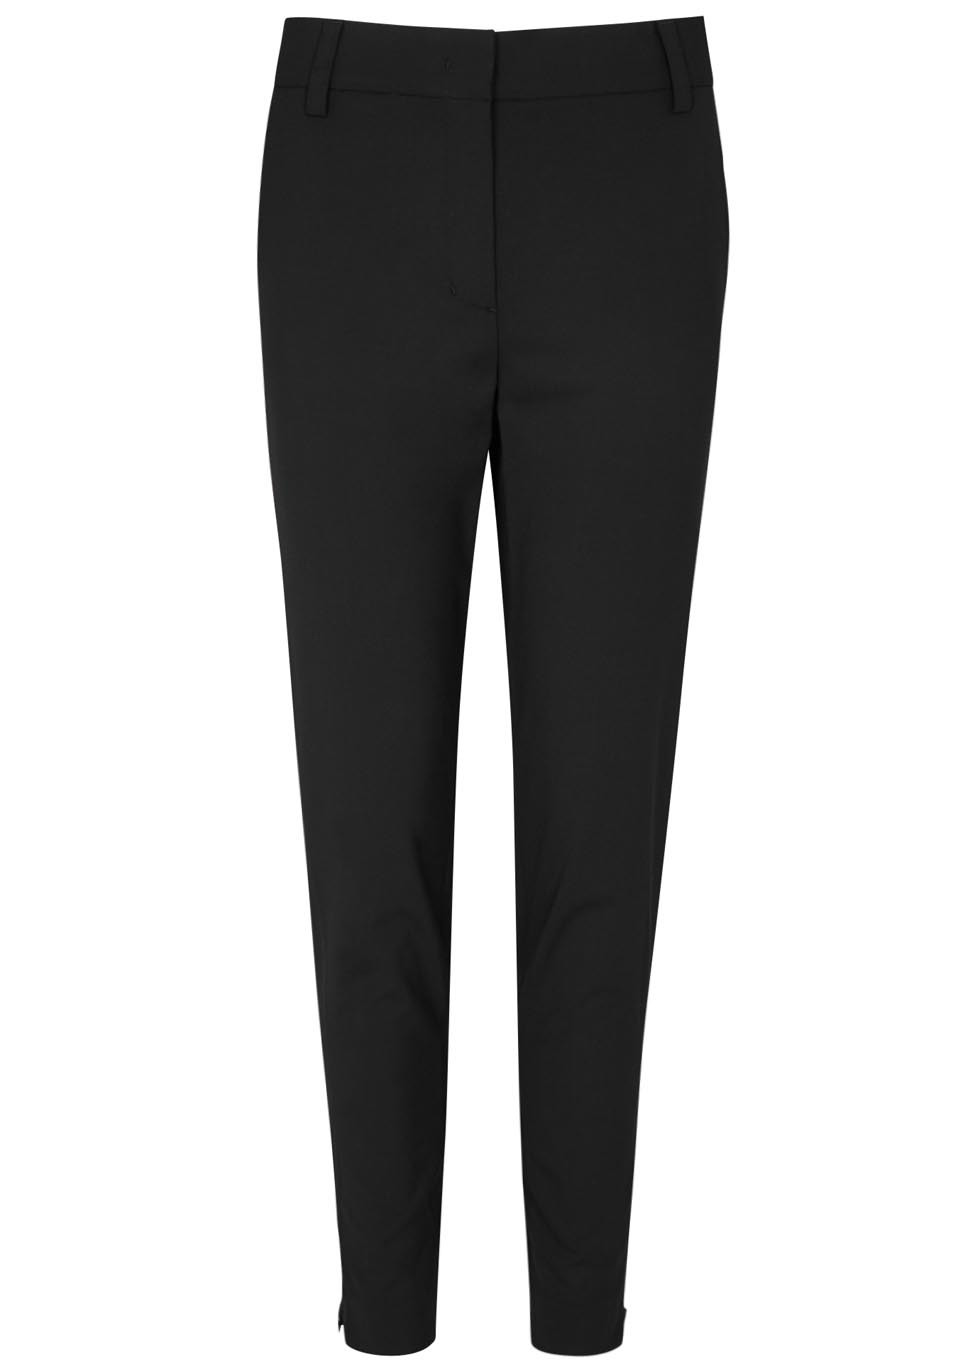 Black Slim Leg Stretch Wool Trousers - pattern: plain; waist: mid/regular rise; predominant colour: black; occasions: casual, work, creative work; length: ankle length; fibres: wool - stretch; fit: slim leg; pattern type: fabric; texture group: other - light to midweight; style: standard; season: s/s 2016; wardrobe: basic